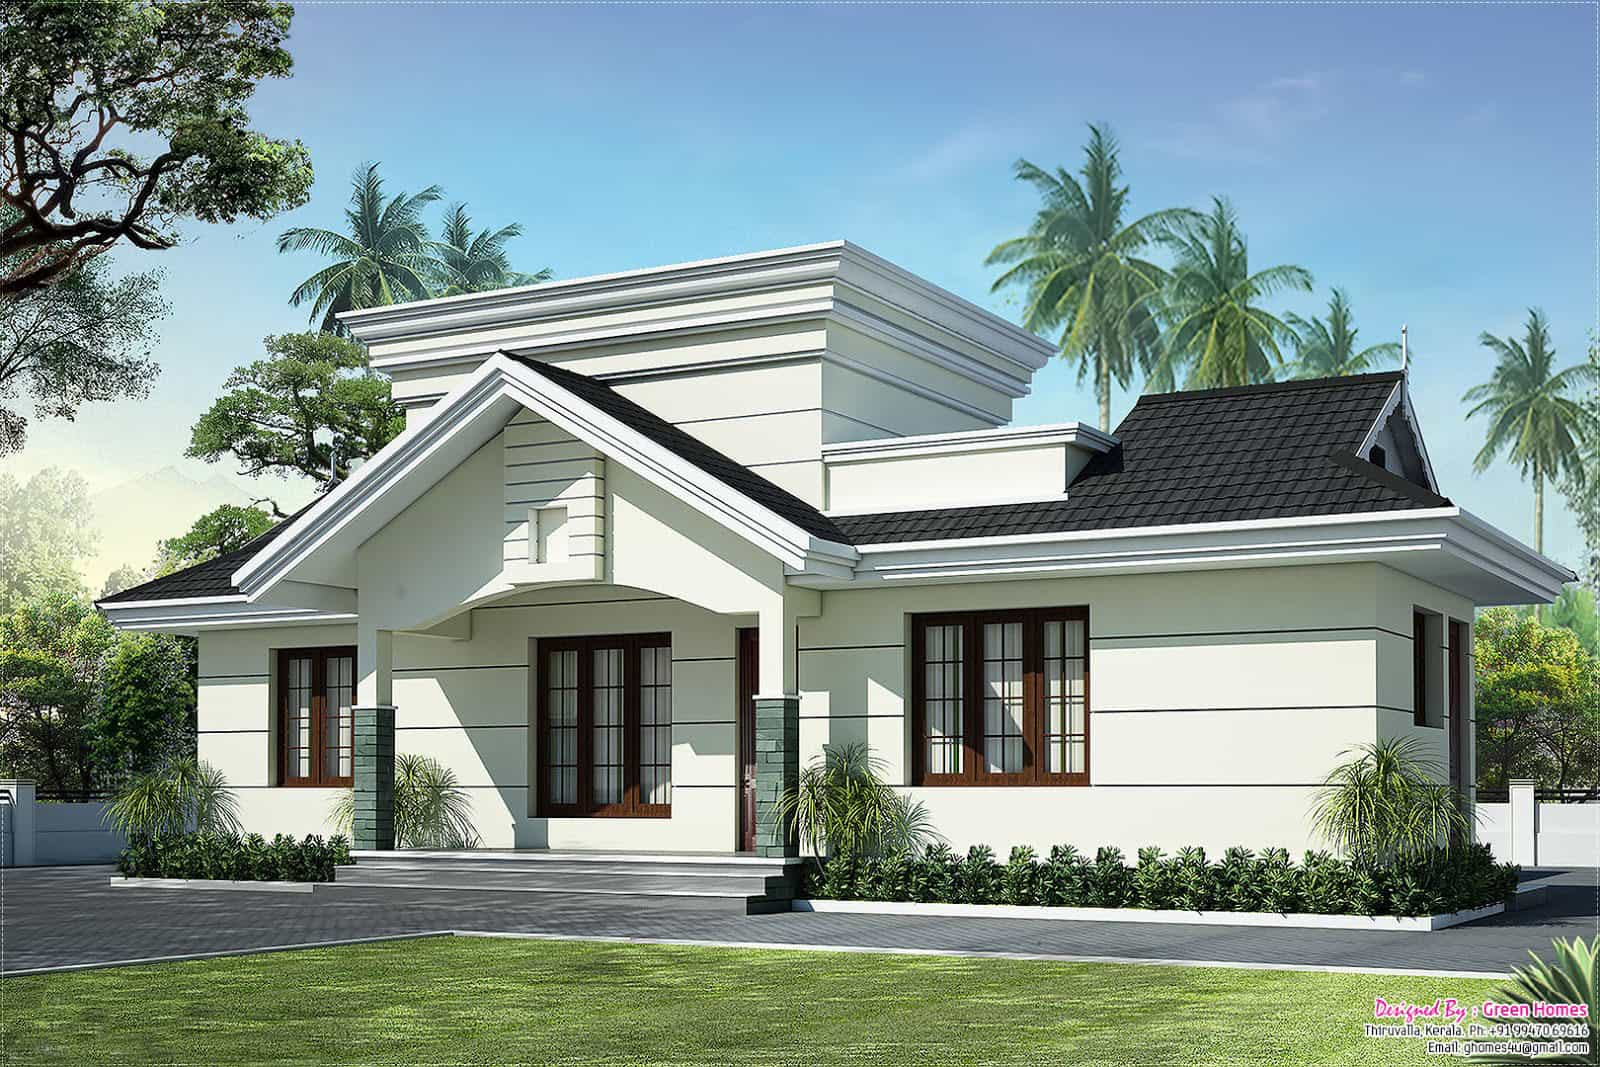 Simple And Low Budget House Plans Home Design Elements: low budget house plans